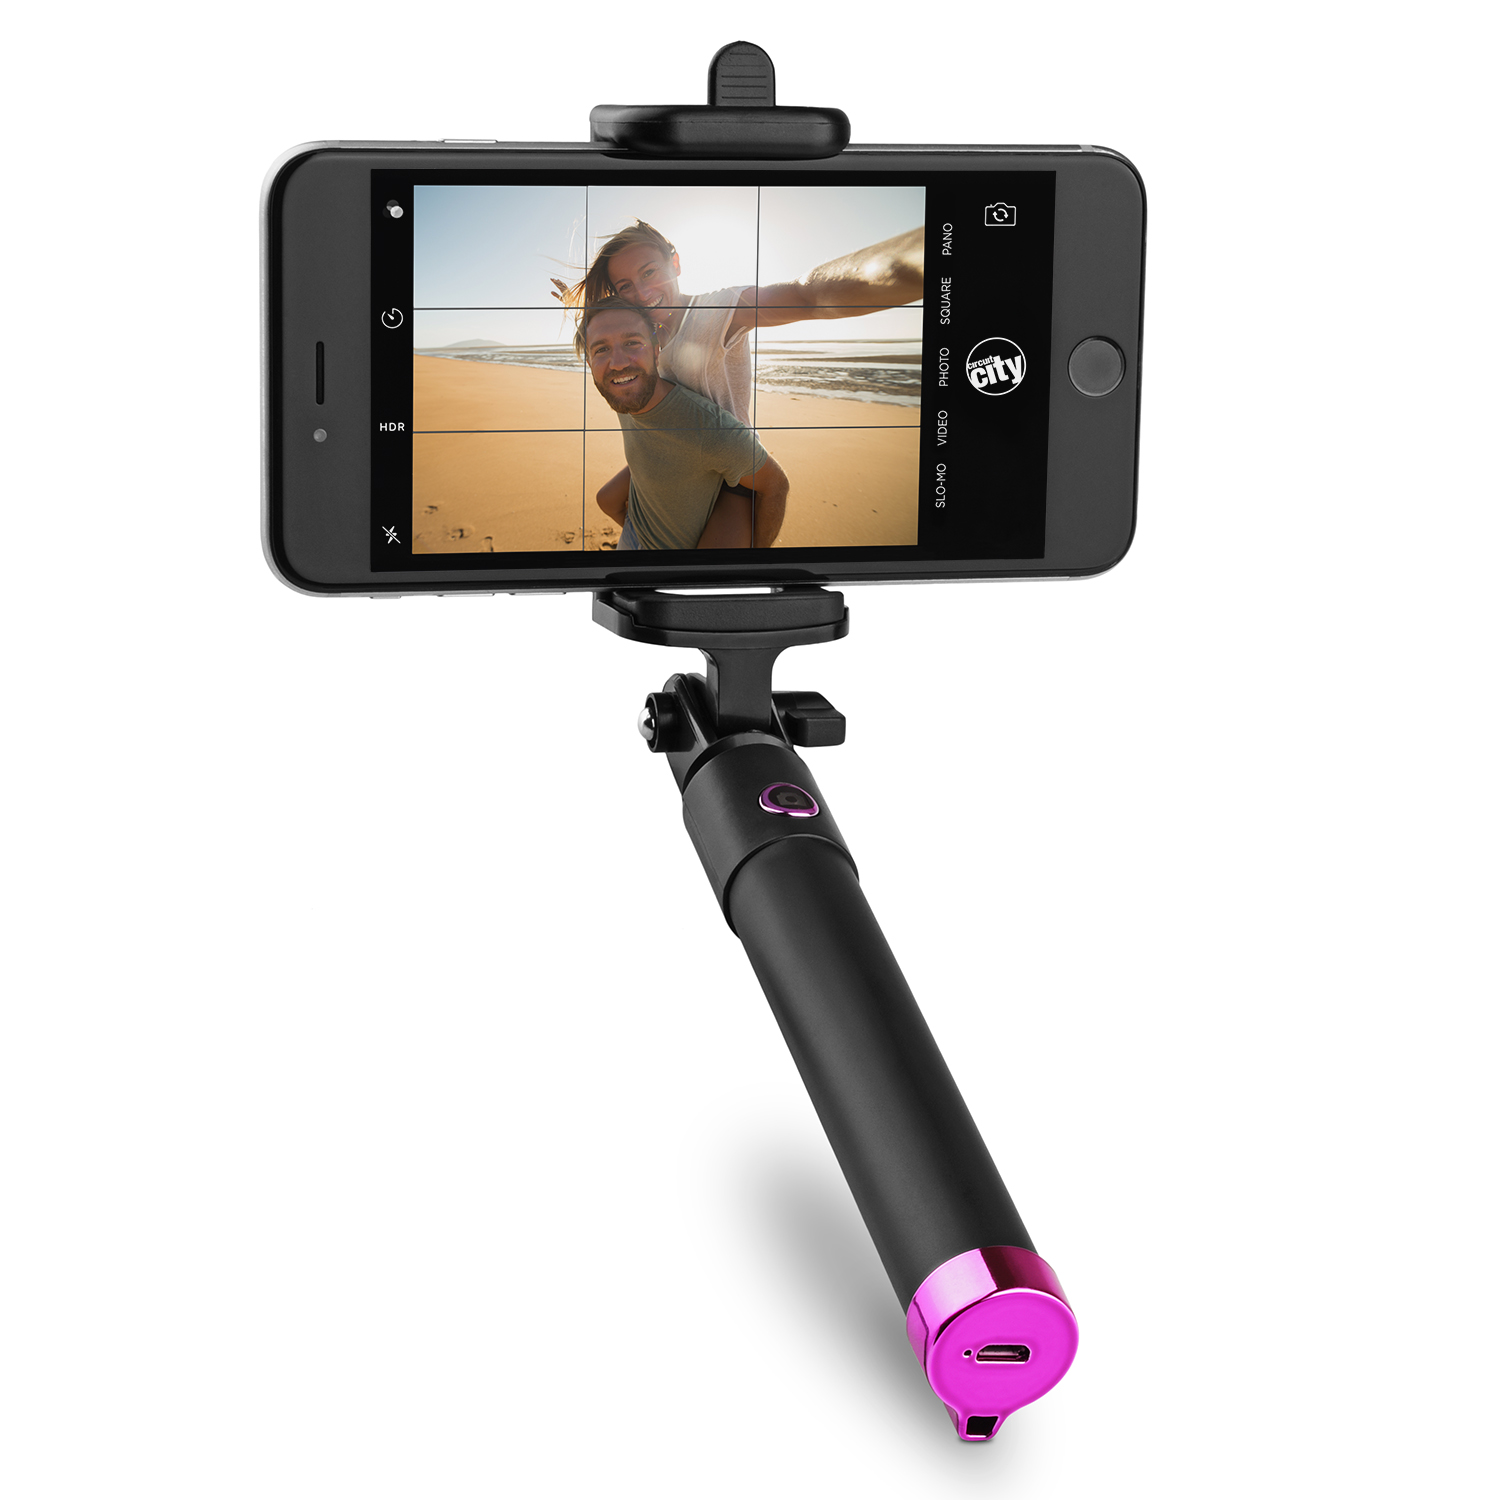 Image for Circuit City Bluetooth Selfie Stick - Pink from Circuit City